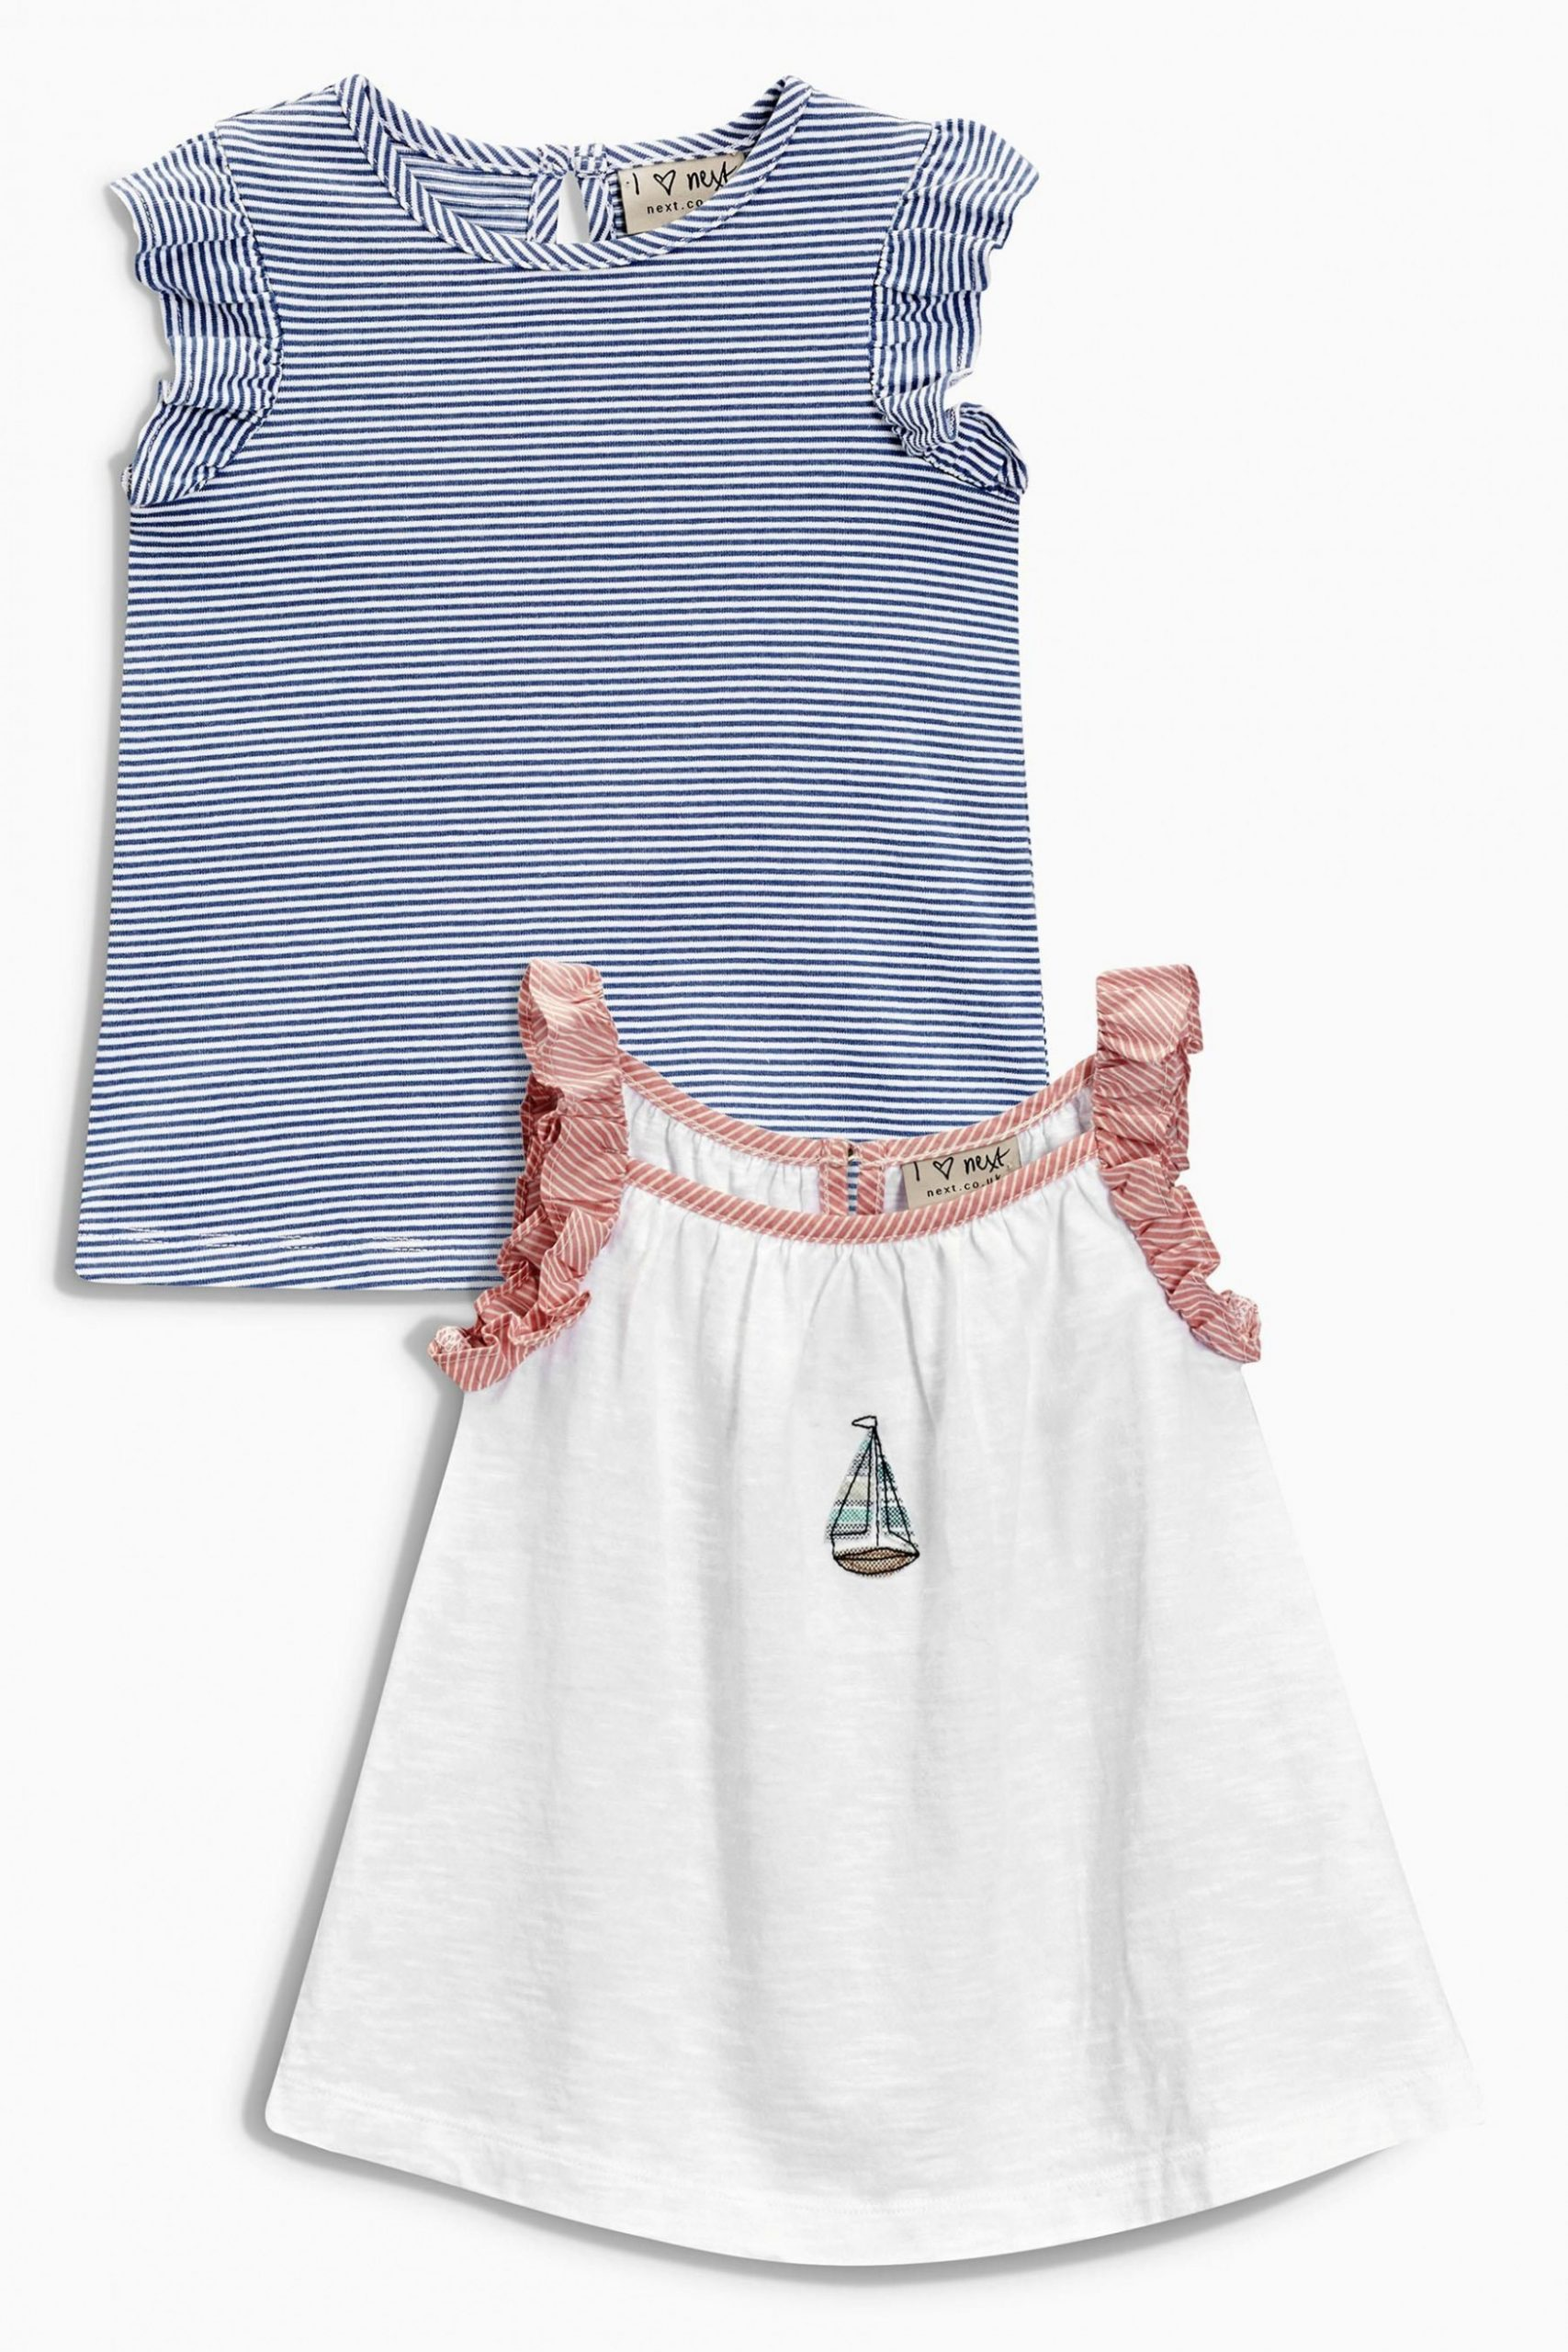 buy white boat tops two pack (12mths 12yrs) online today at next next klamotten